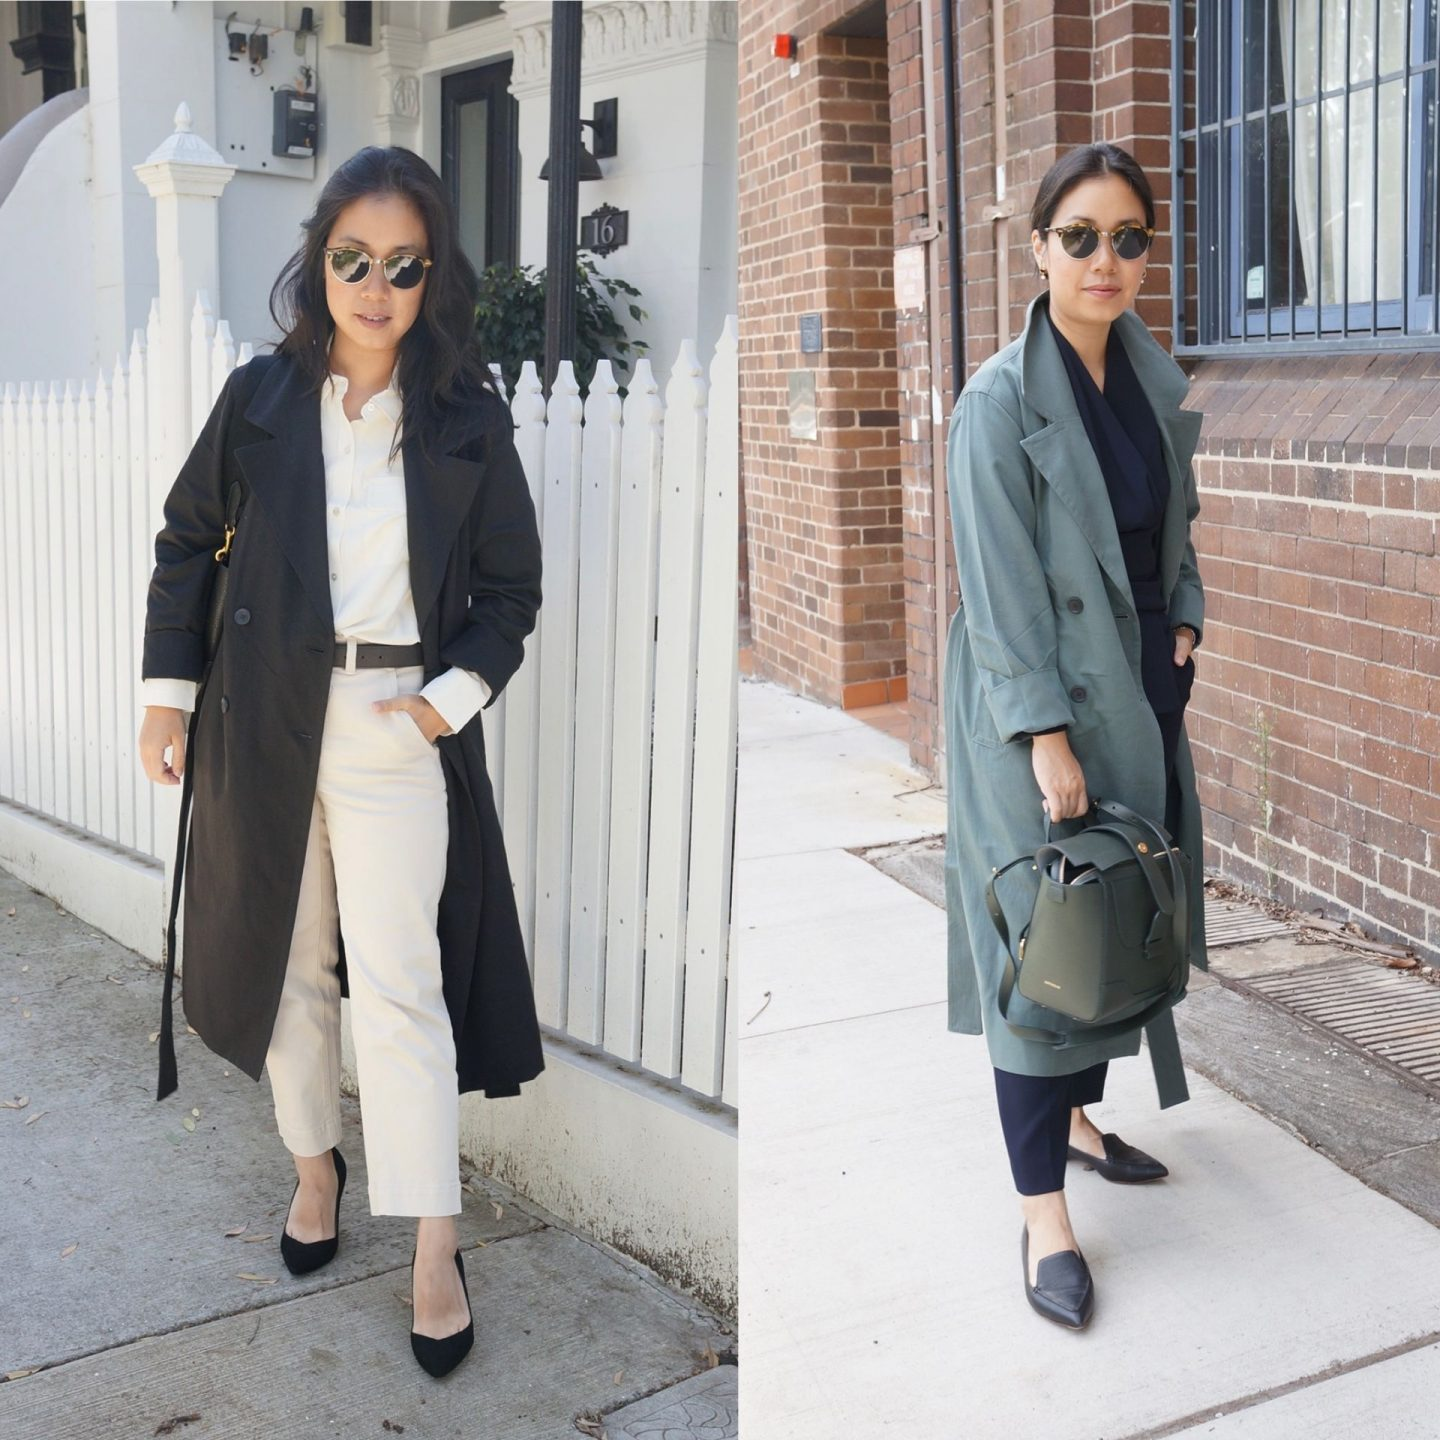 everlane drape trench coat in blog post about everlane workwear favourites